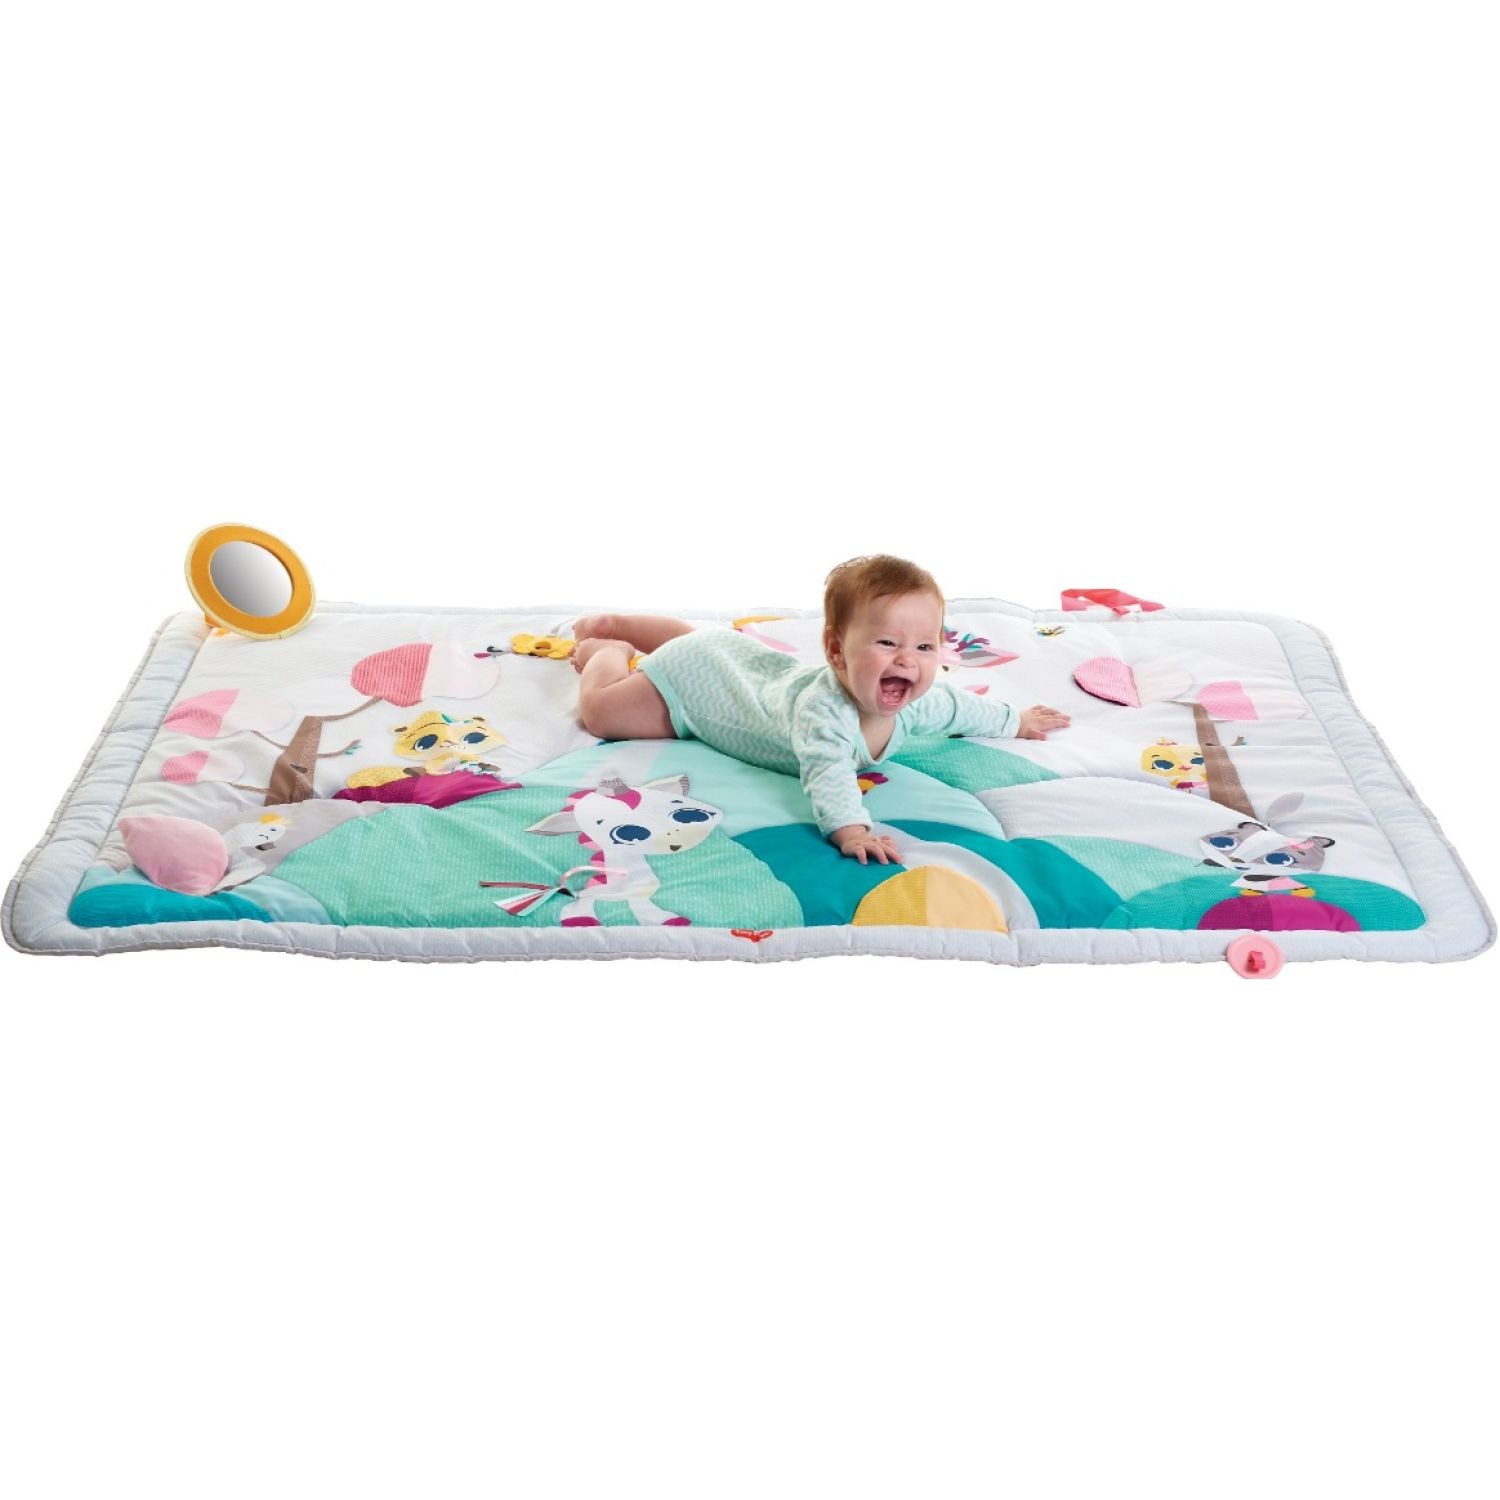 TINY LOVE SUPER MAT TINY PRINCESS TALES MULTICOLOR Cuna Juguetes y Anexos